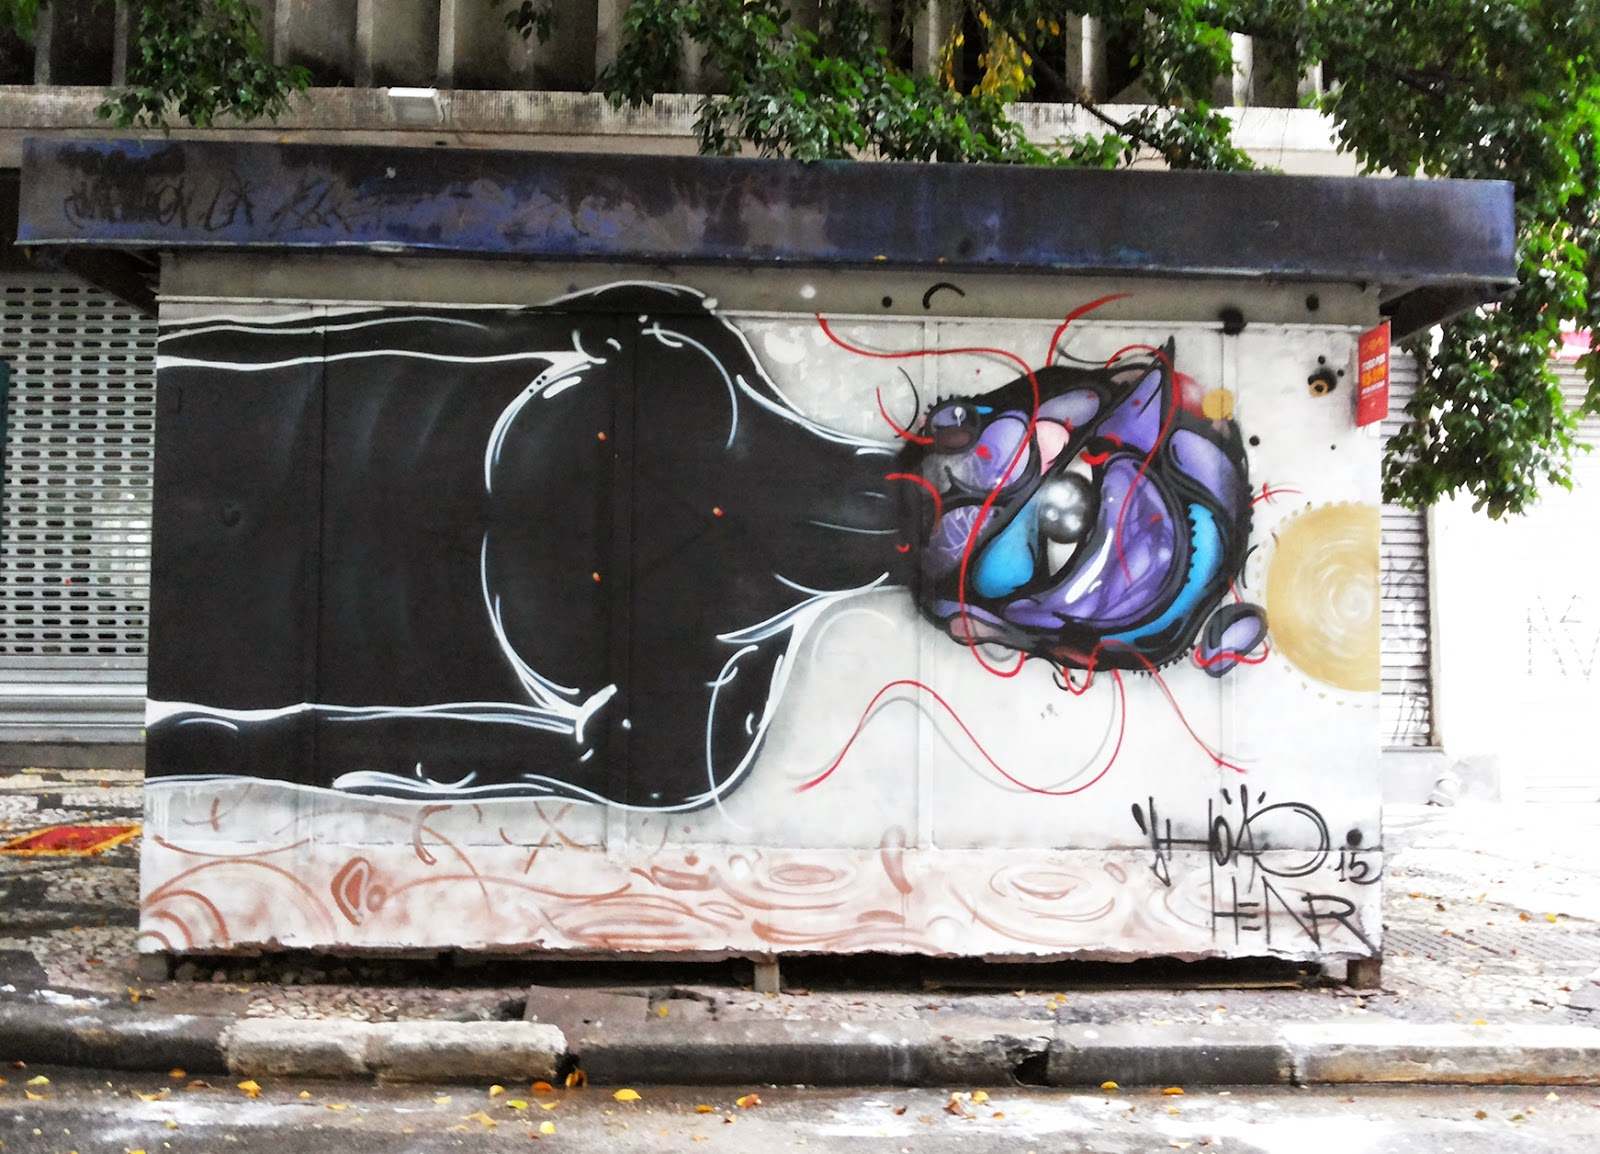 Jhoao Henr spent his week-end on the sunny streets of Sao Paulo where he just finished working on this brand new piece.